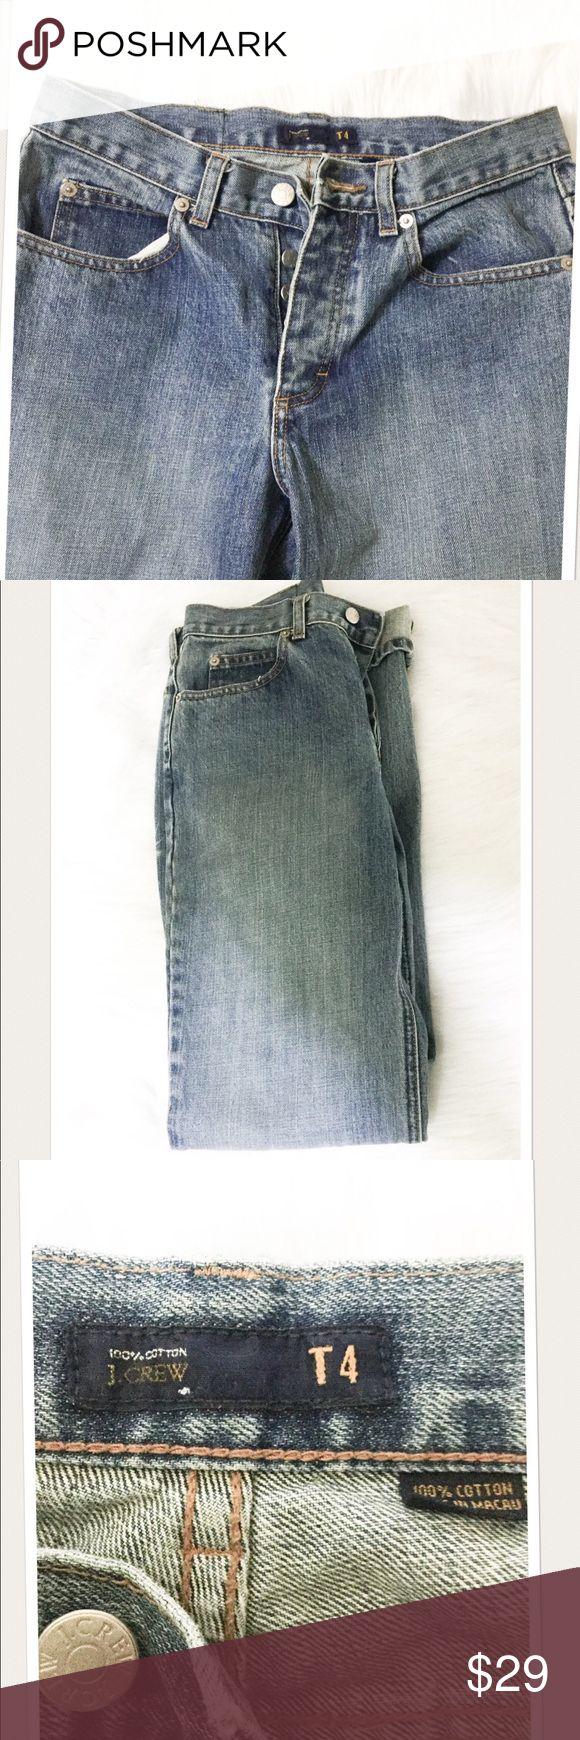 J. Crew Button Fly Jeans Excellent preowned condition. J. Crew button fly straight leg blue jeans. Size four.  ✔️posh rules only ✔️no paypal ✔️no lowball offers  Price firm unless bundled  I'm a suggested user and party host, posh ambassador, posh mentor, and I'm five star rated so buy with confidence!  H A P P Y  P O S H I N G  ➰✔️➰✔️➰✔️➰✔️➰✔️➰✔️➰ J. Crew Jeans Straight Leg